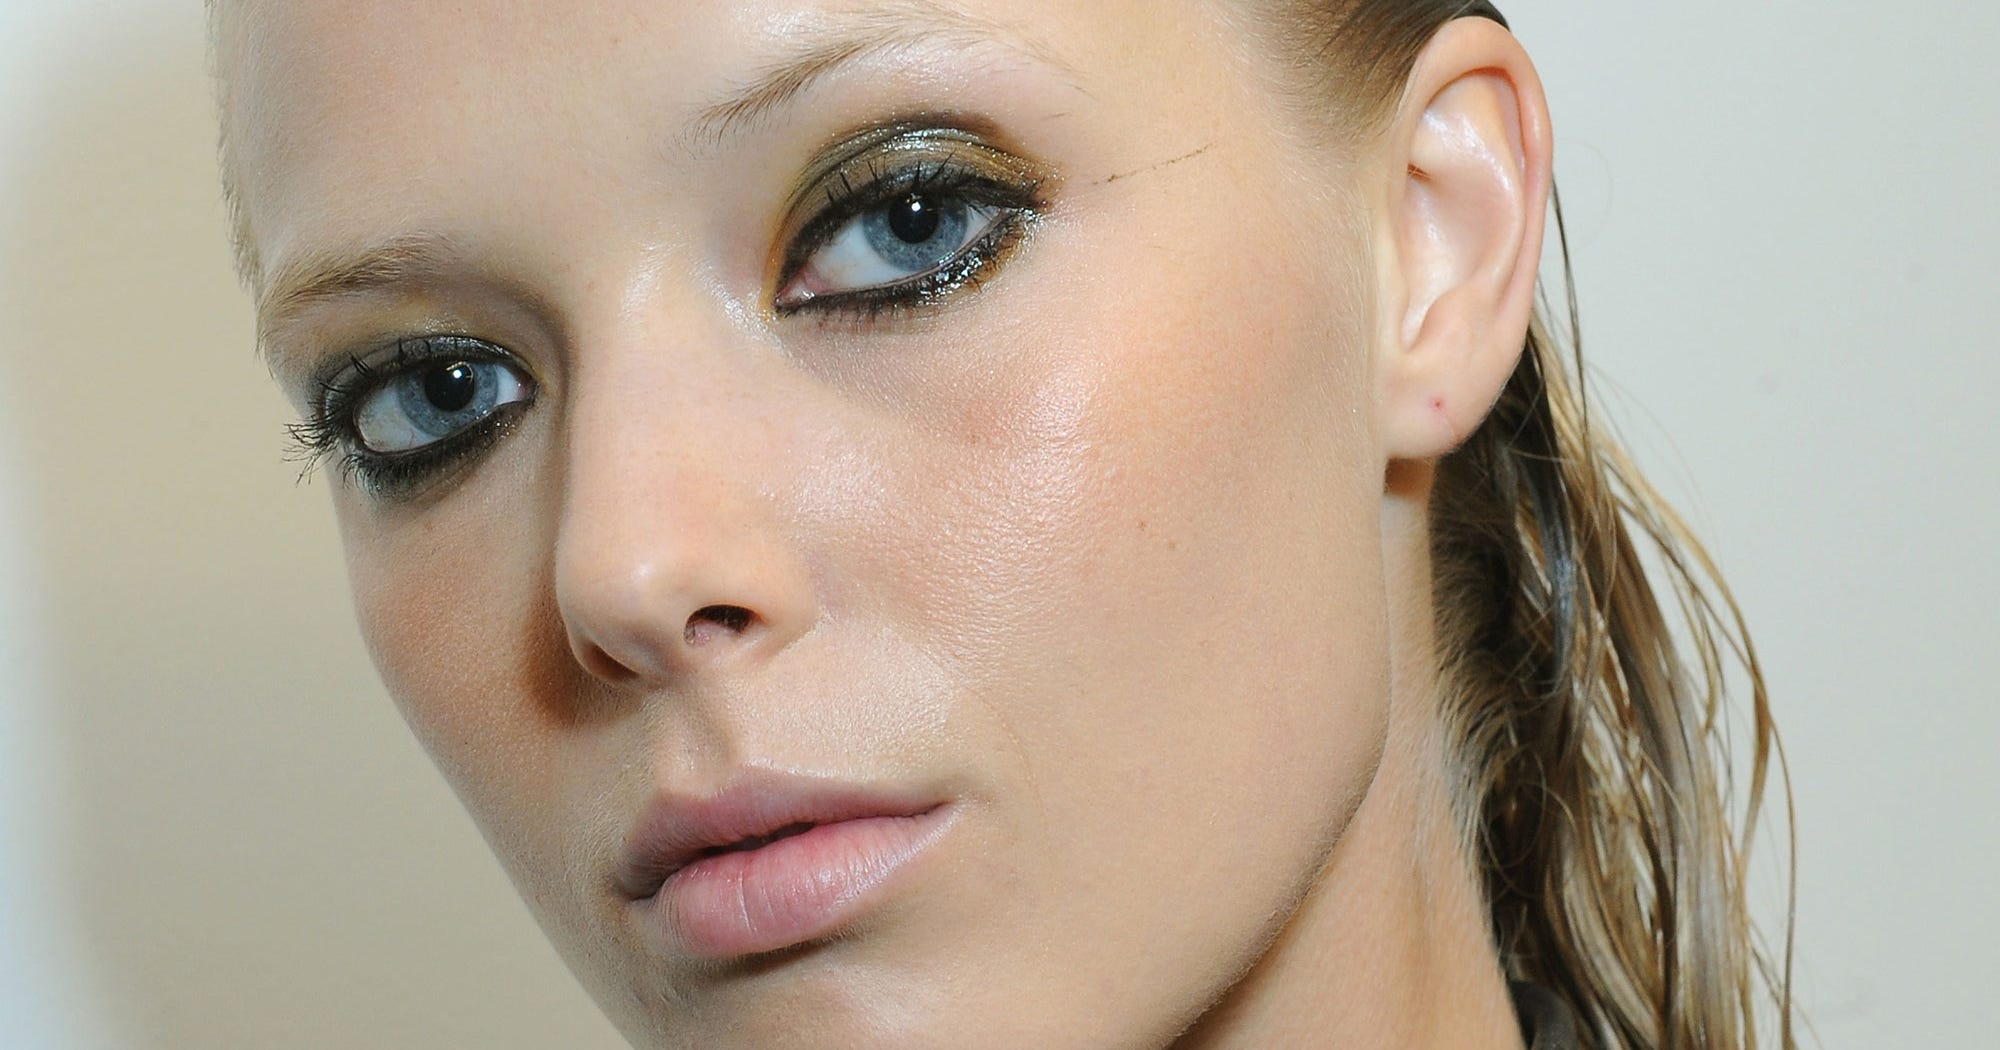 Discussion on this topic: MAC Eyes Milk for FashionWeek, mac-eyes-milk-for-fashionweek/